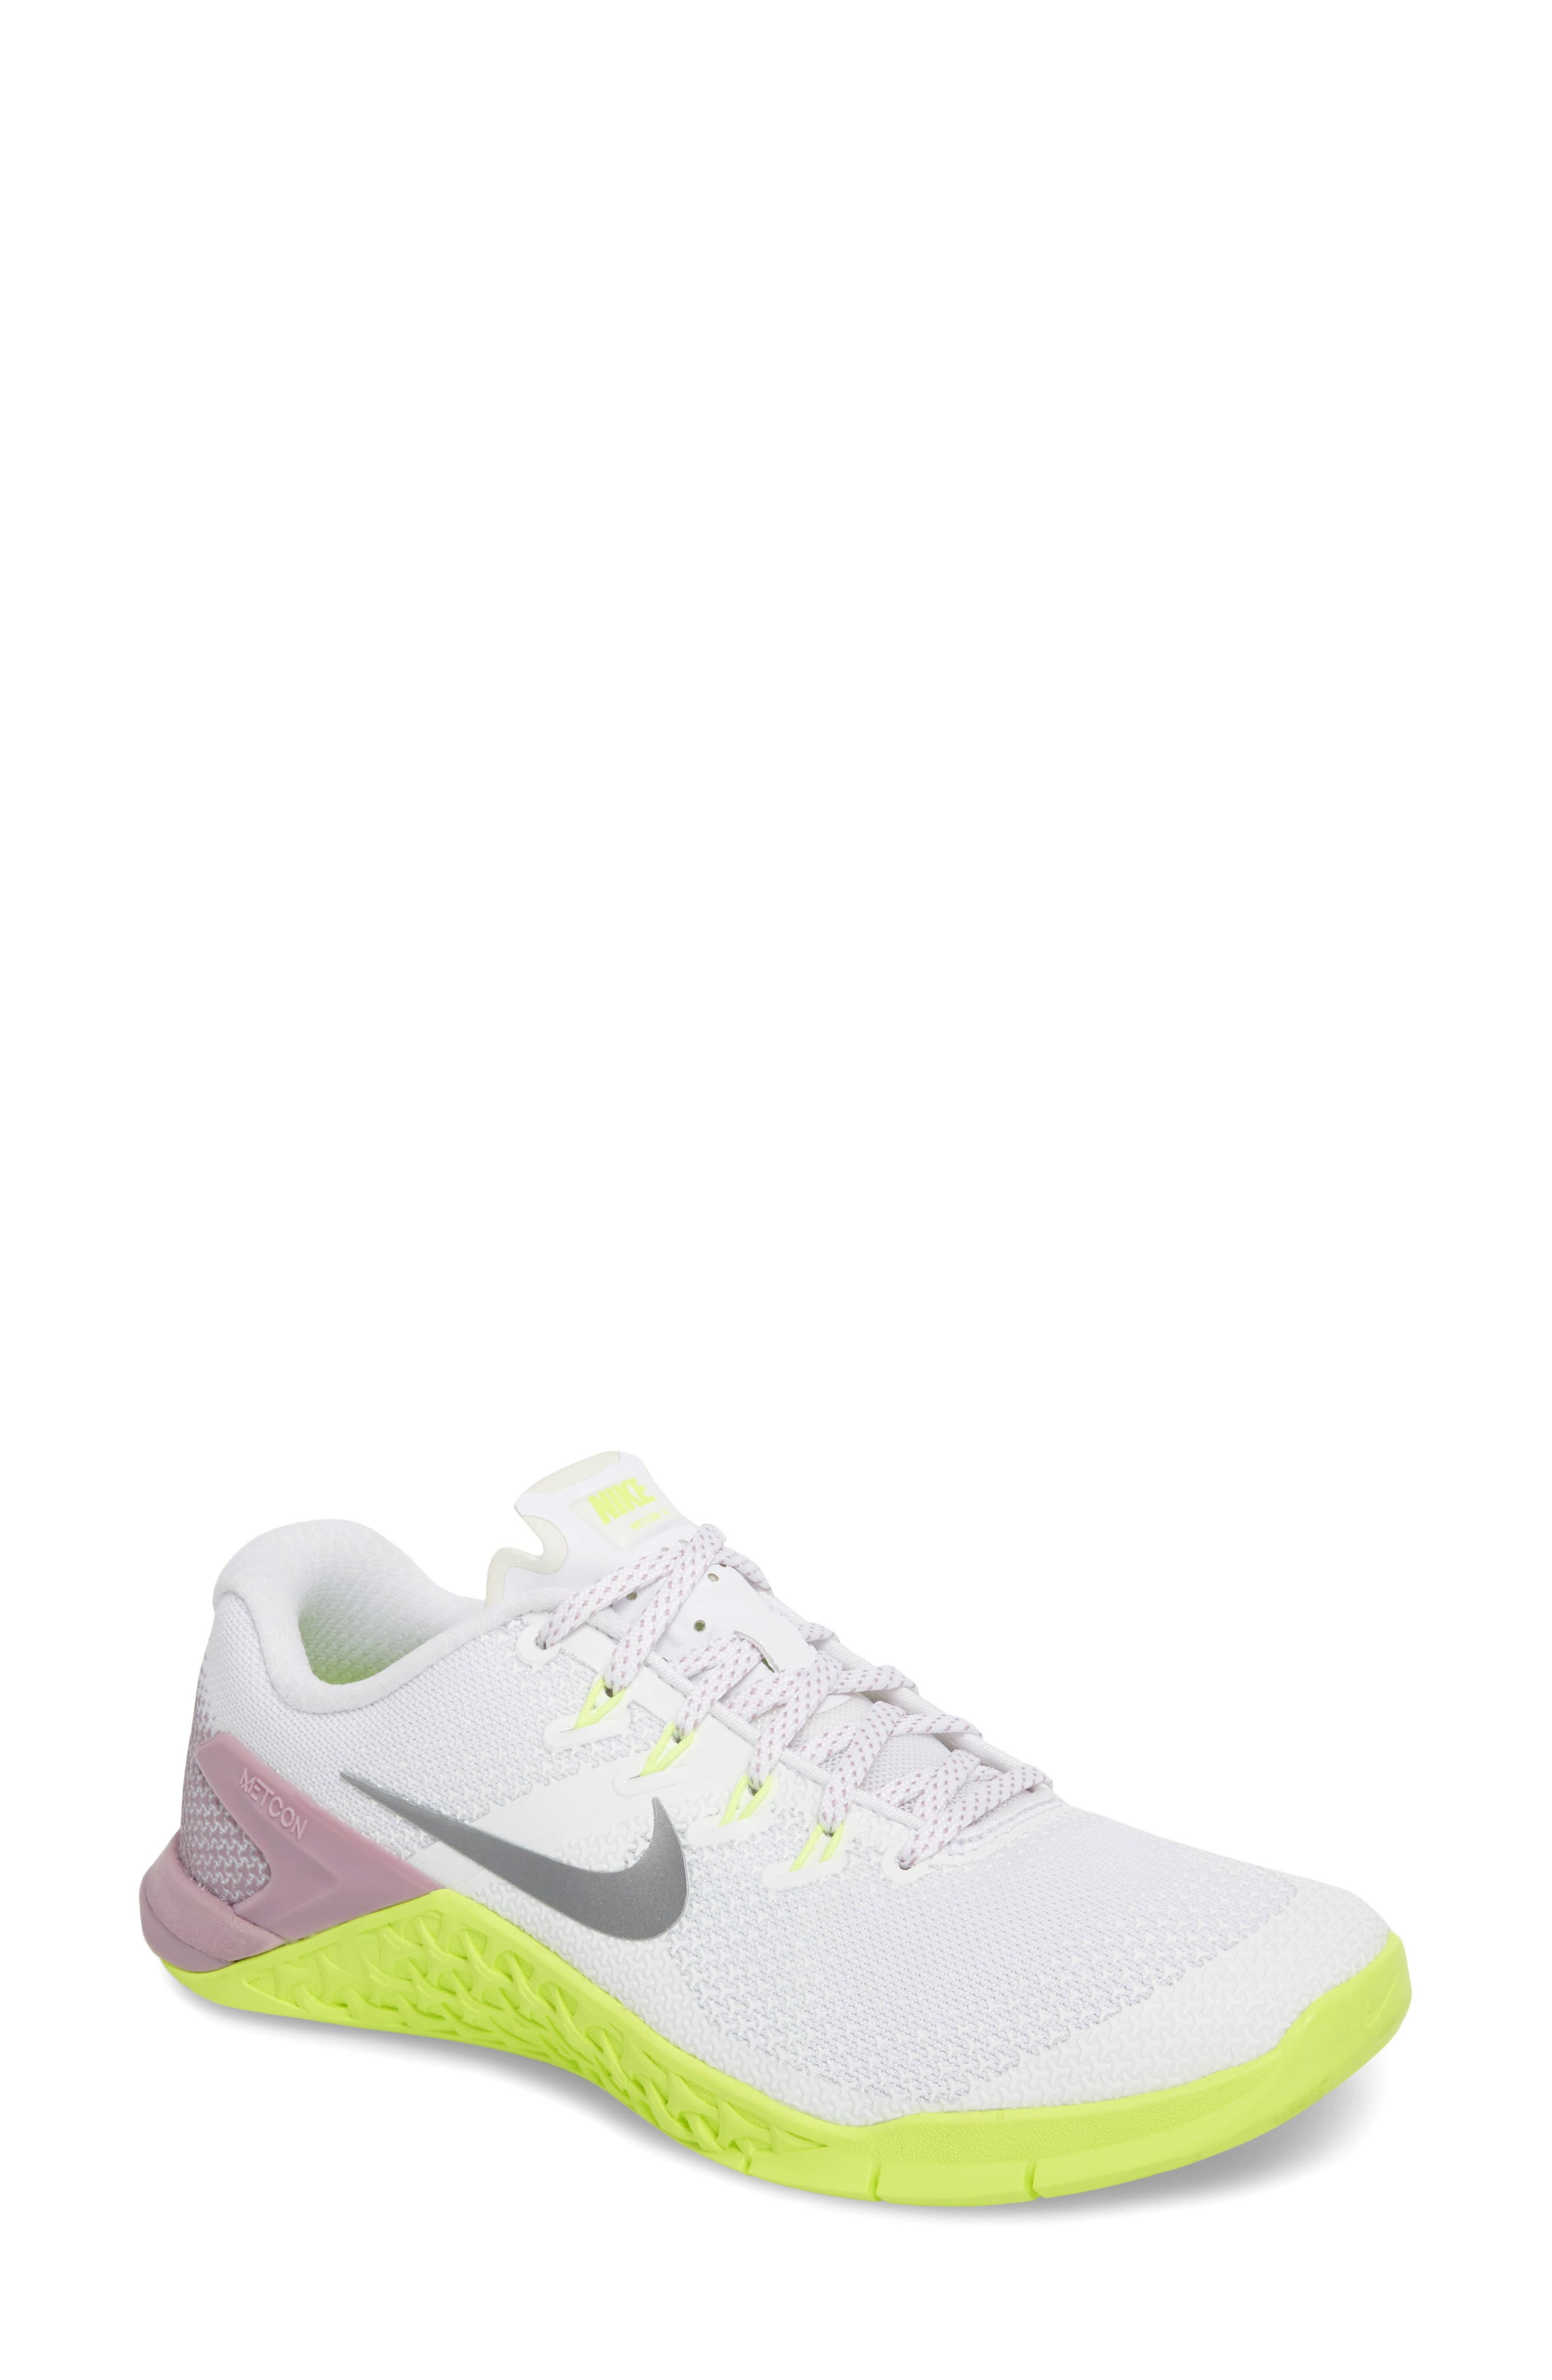 Metcon 4 Training Shoe,                             Main thumbnail 5, color,